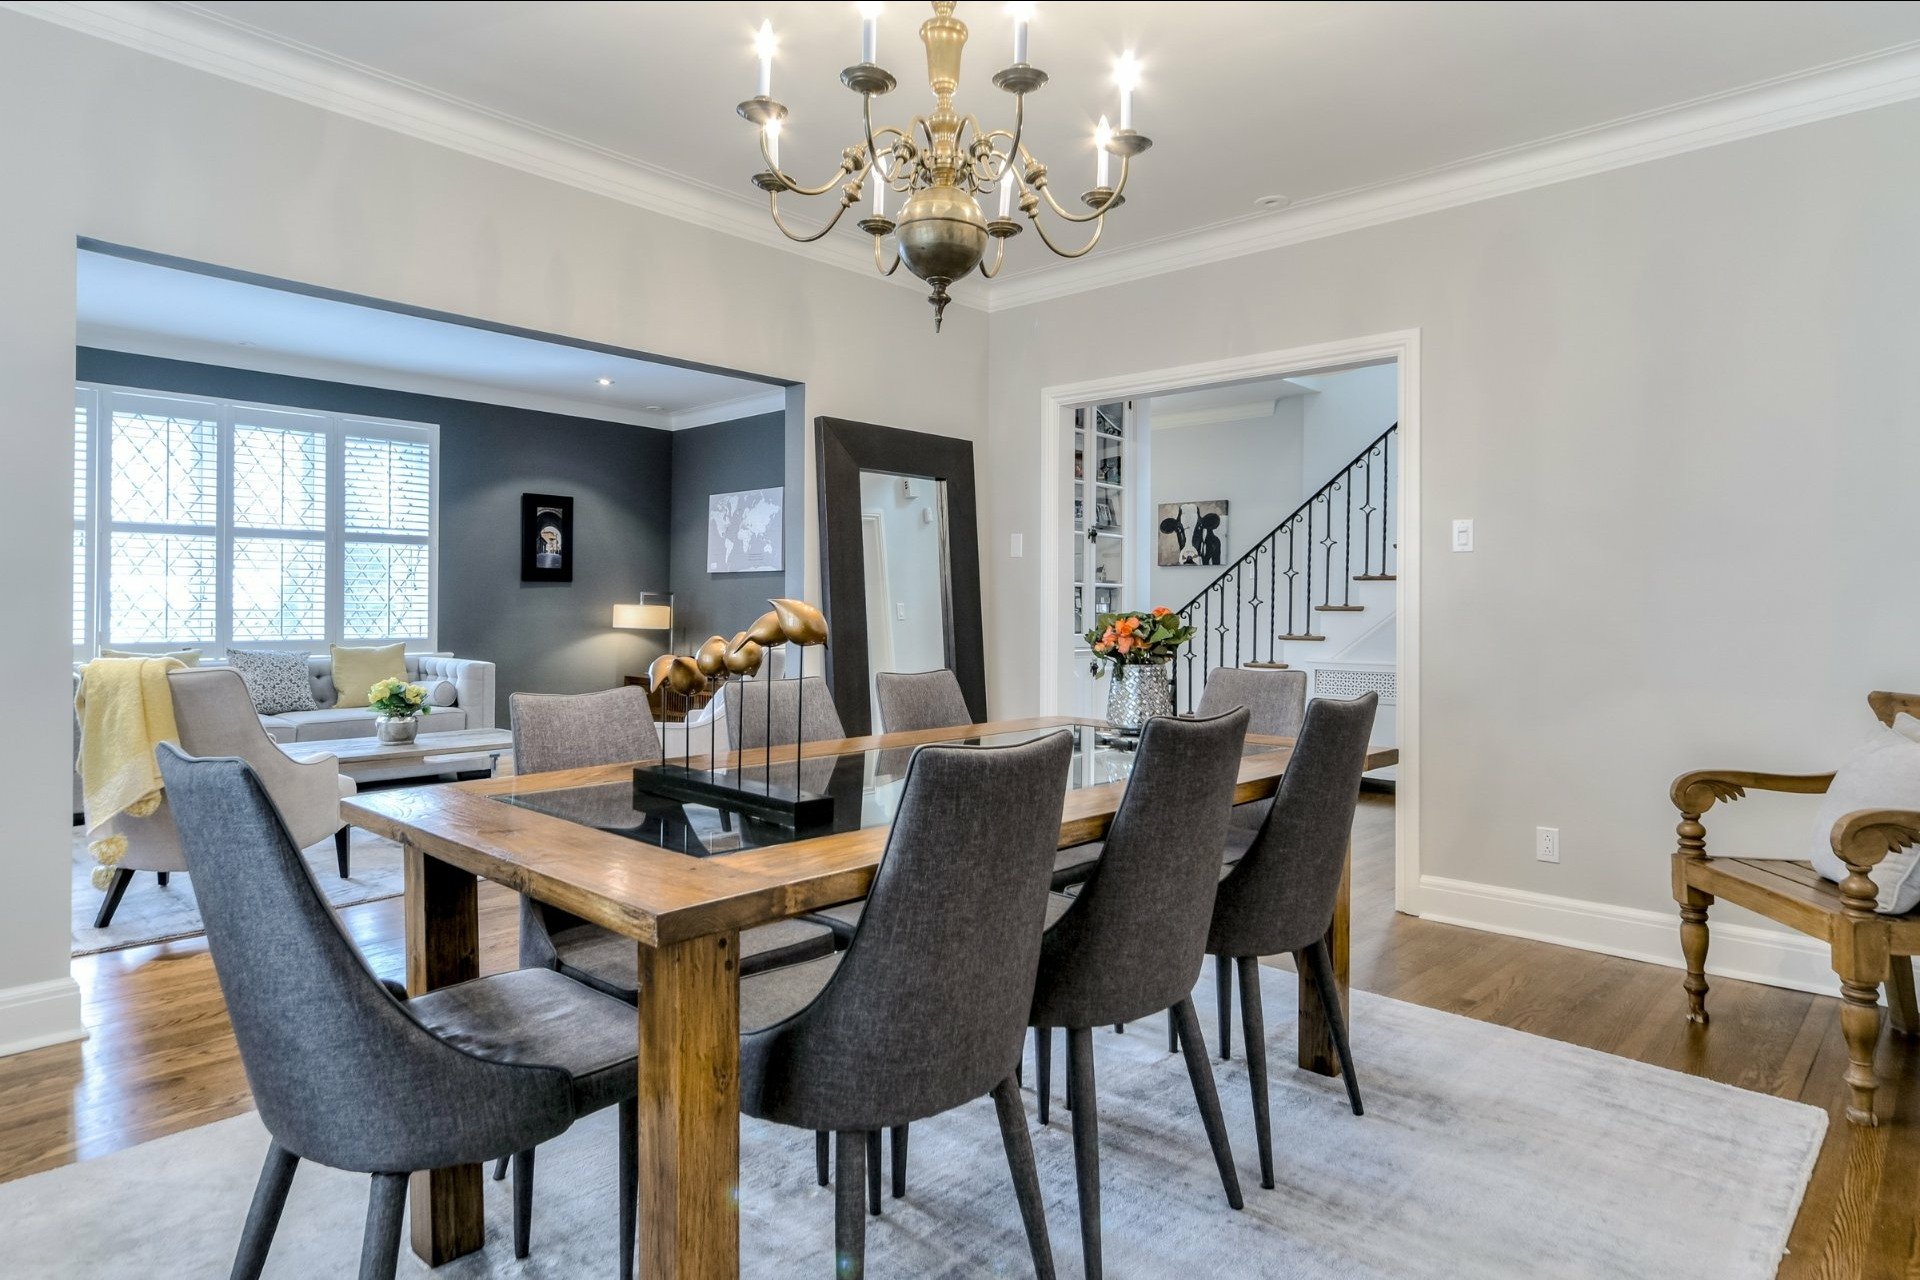 image 4 - House For sale Westmount - 15 rooms